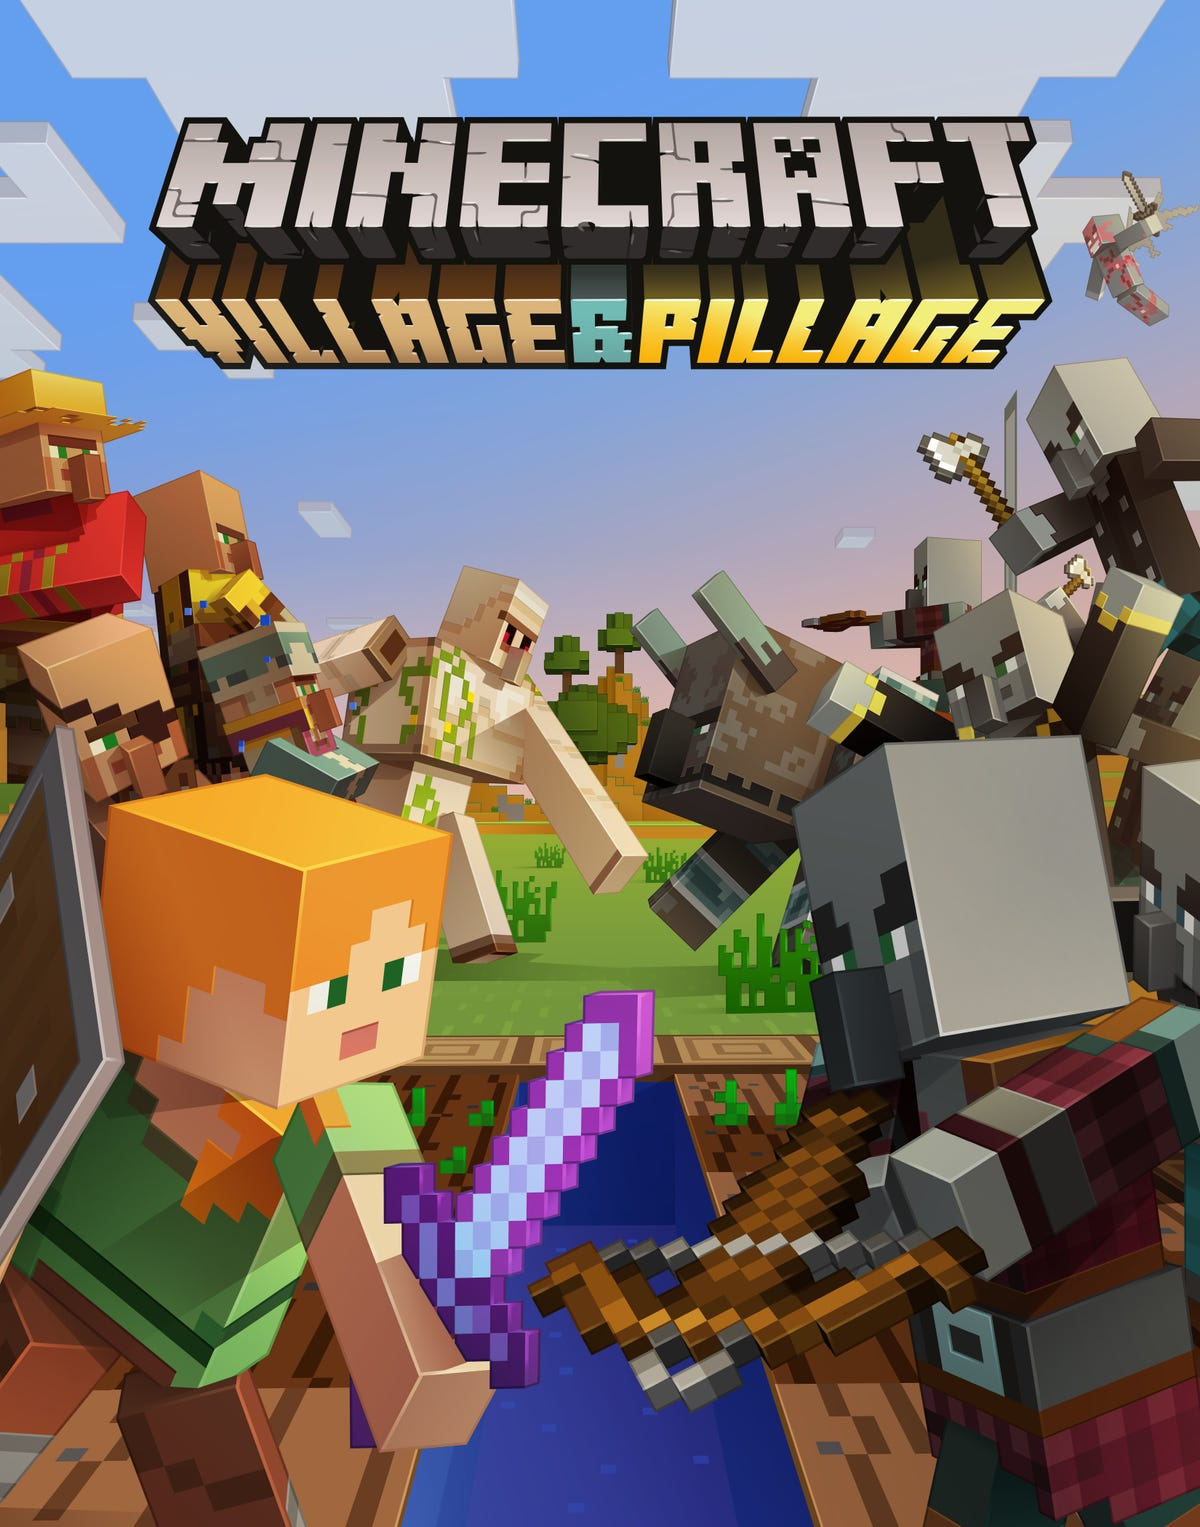 New 'Minecraft' update means better villages, pillagers with